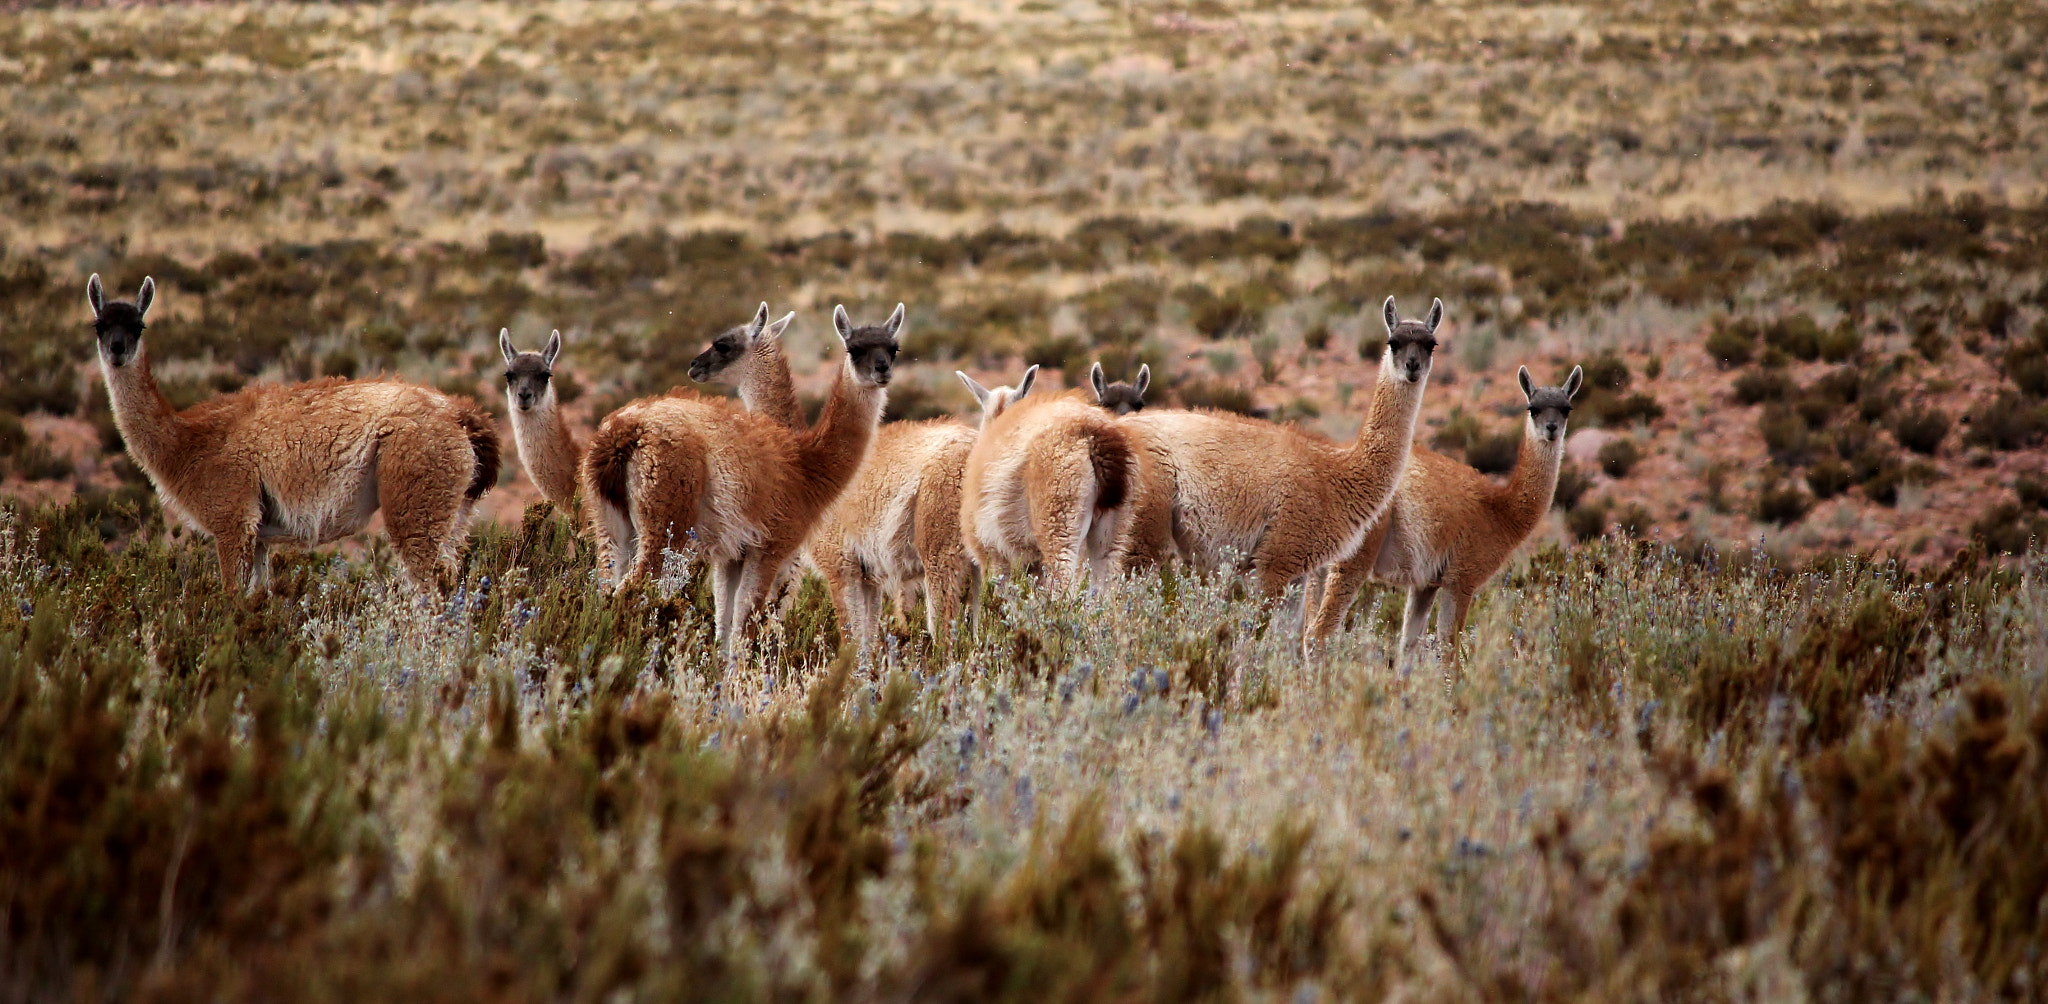 Photograph Guanacos by Nora 80 on 500px